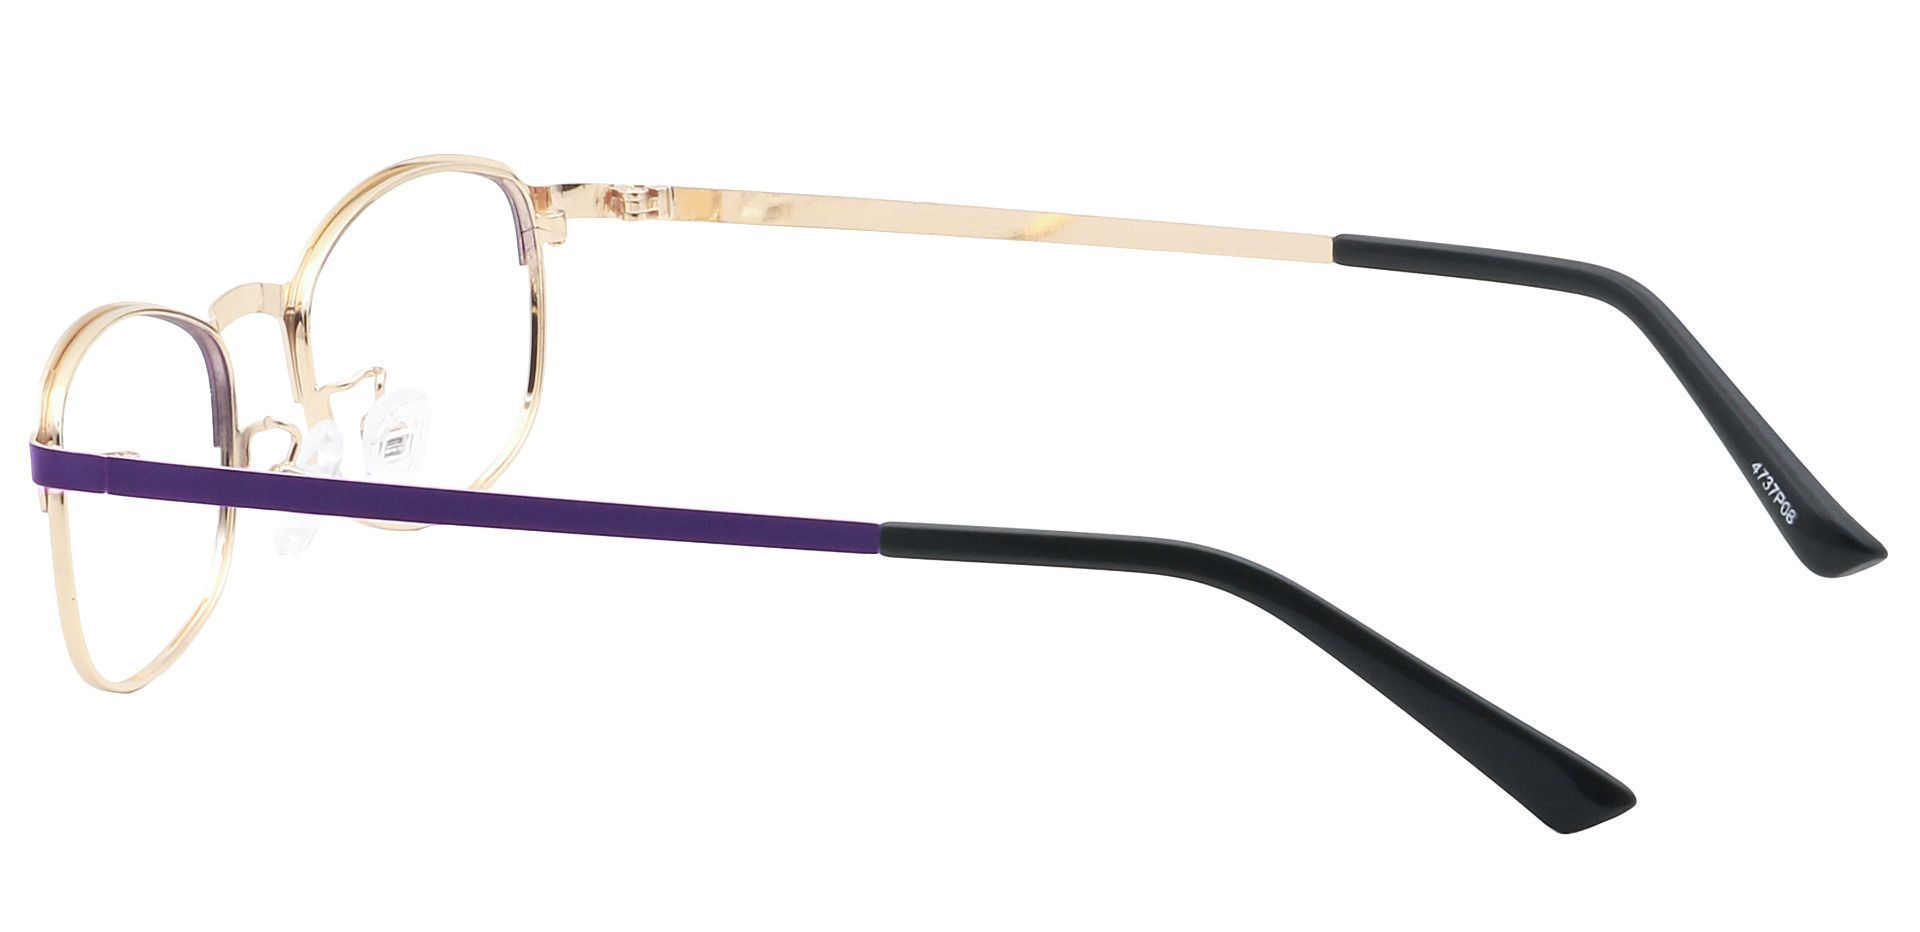 Tyrell Oval Lined Bifocal Glasses - Purple